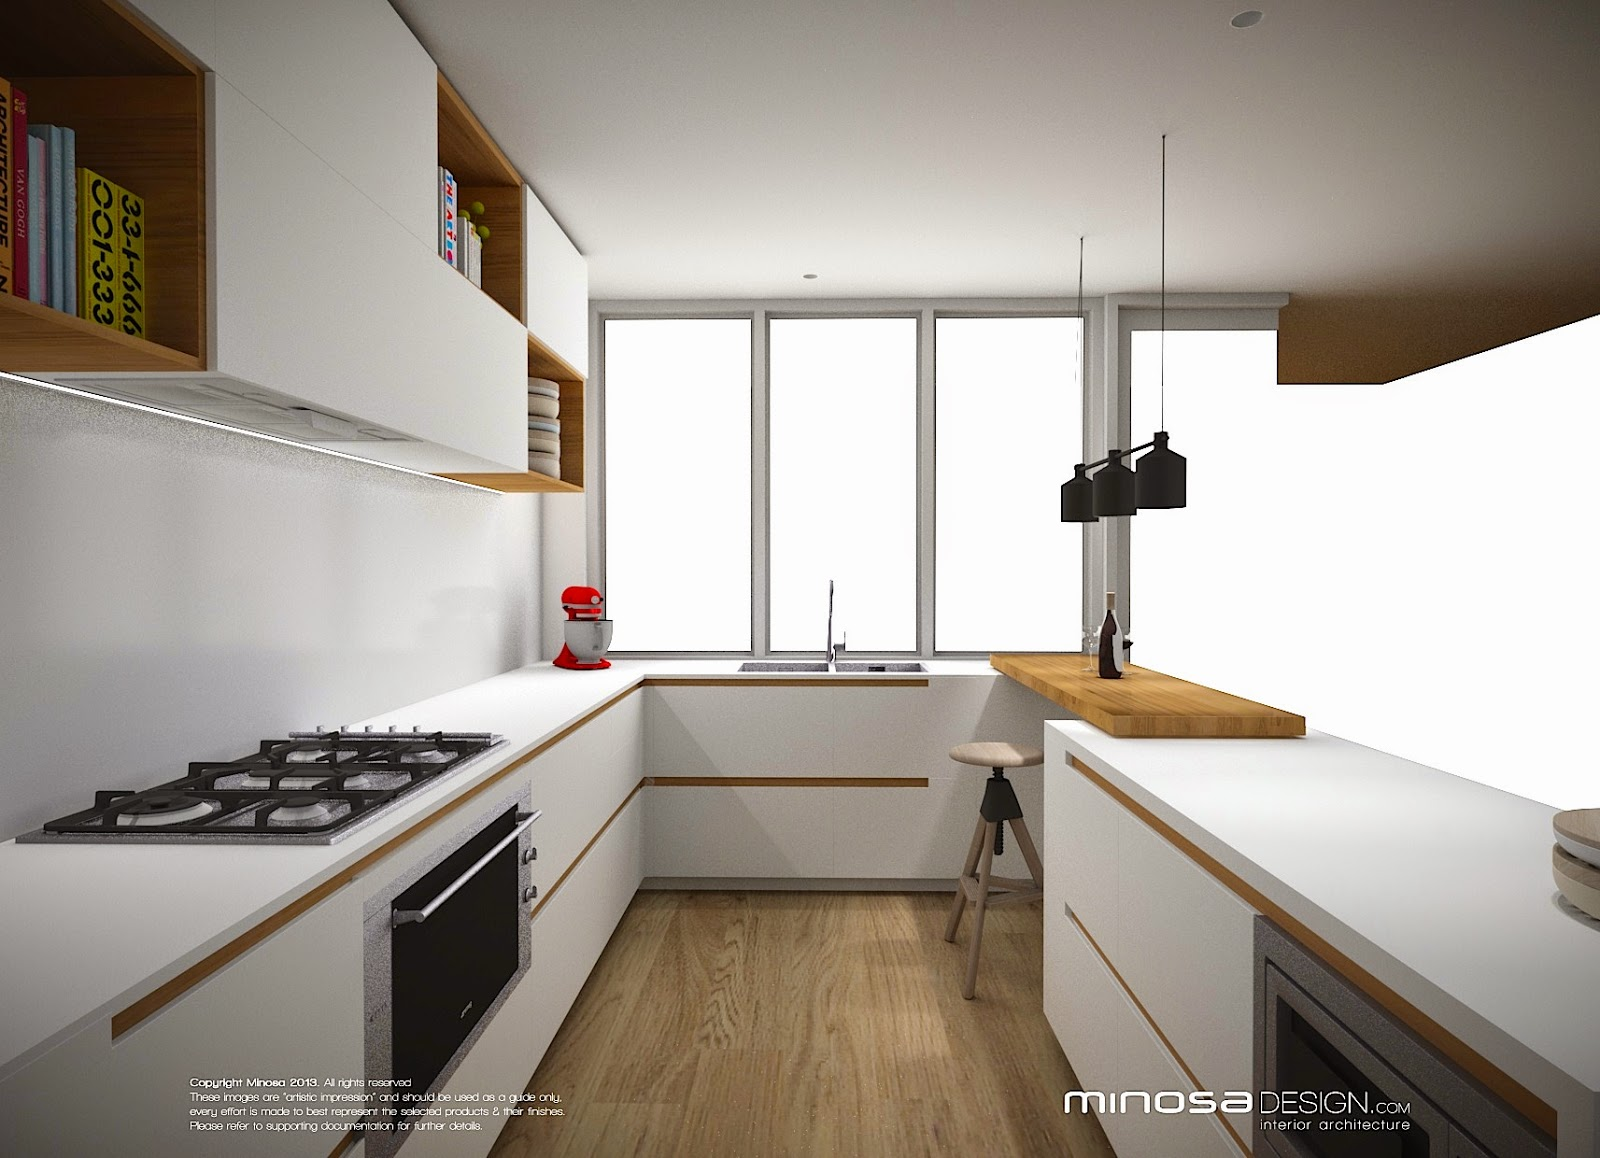 Minosa: Defining small kitchen space with a touch of wood